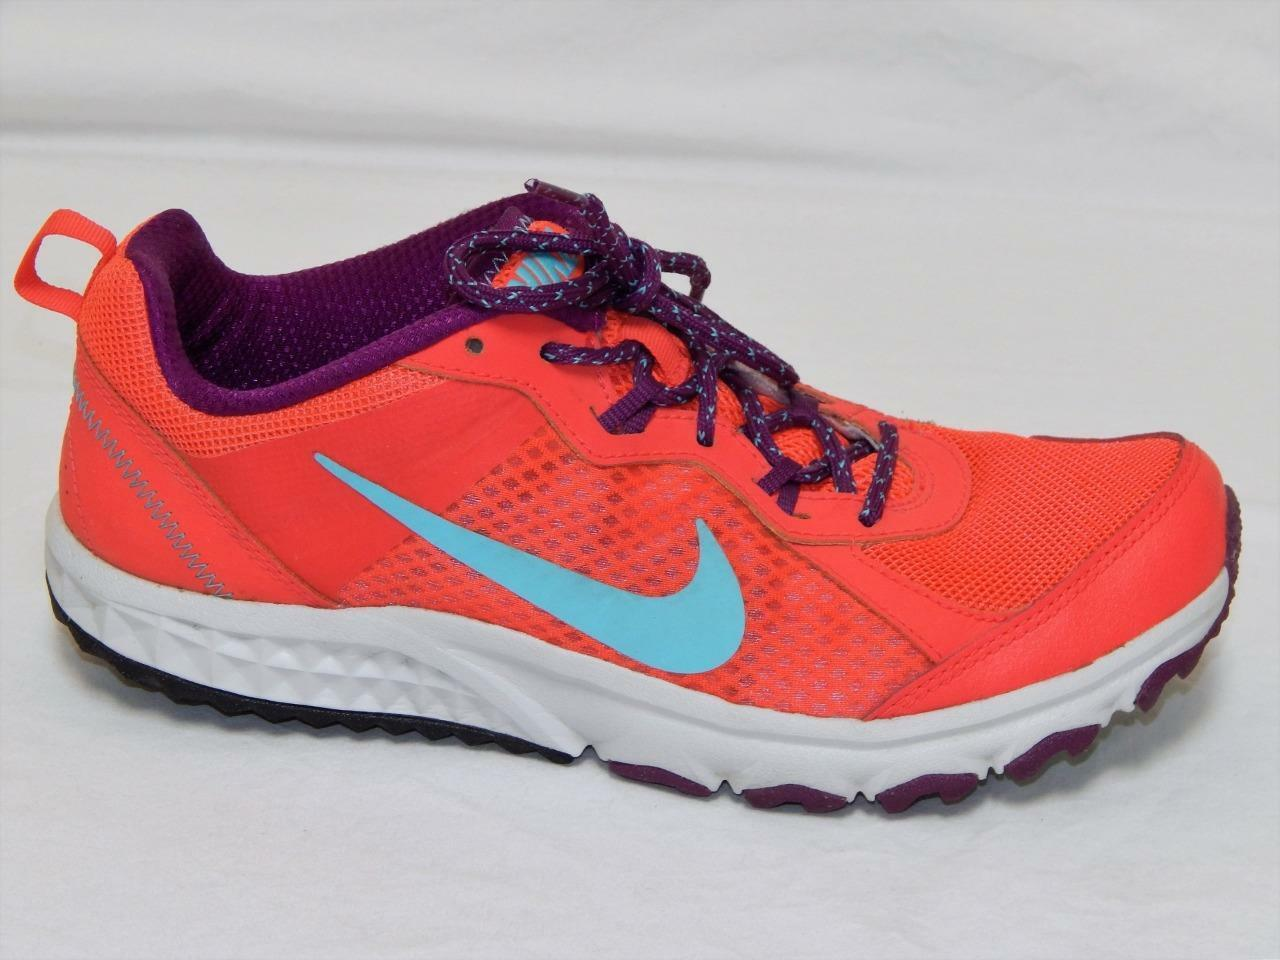 NIKE Women's Pink 643074-600 Wild Trail Athletic Running shoes Size 9.5